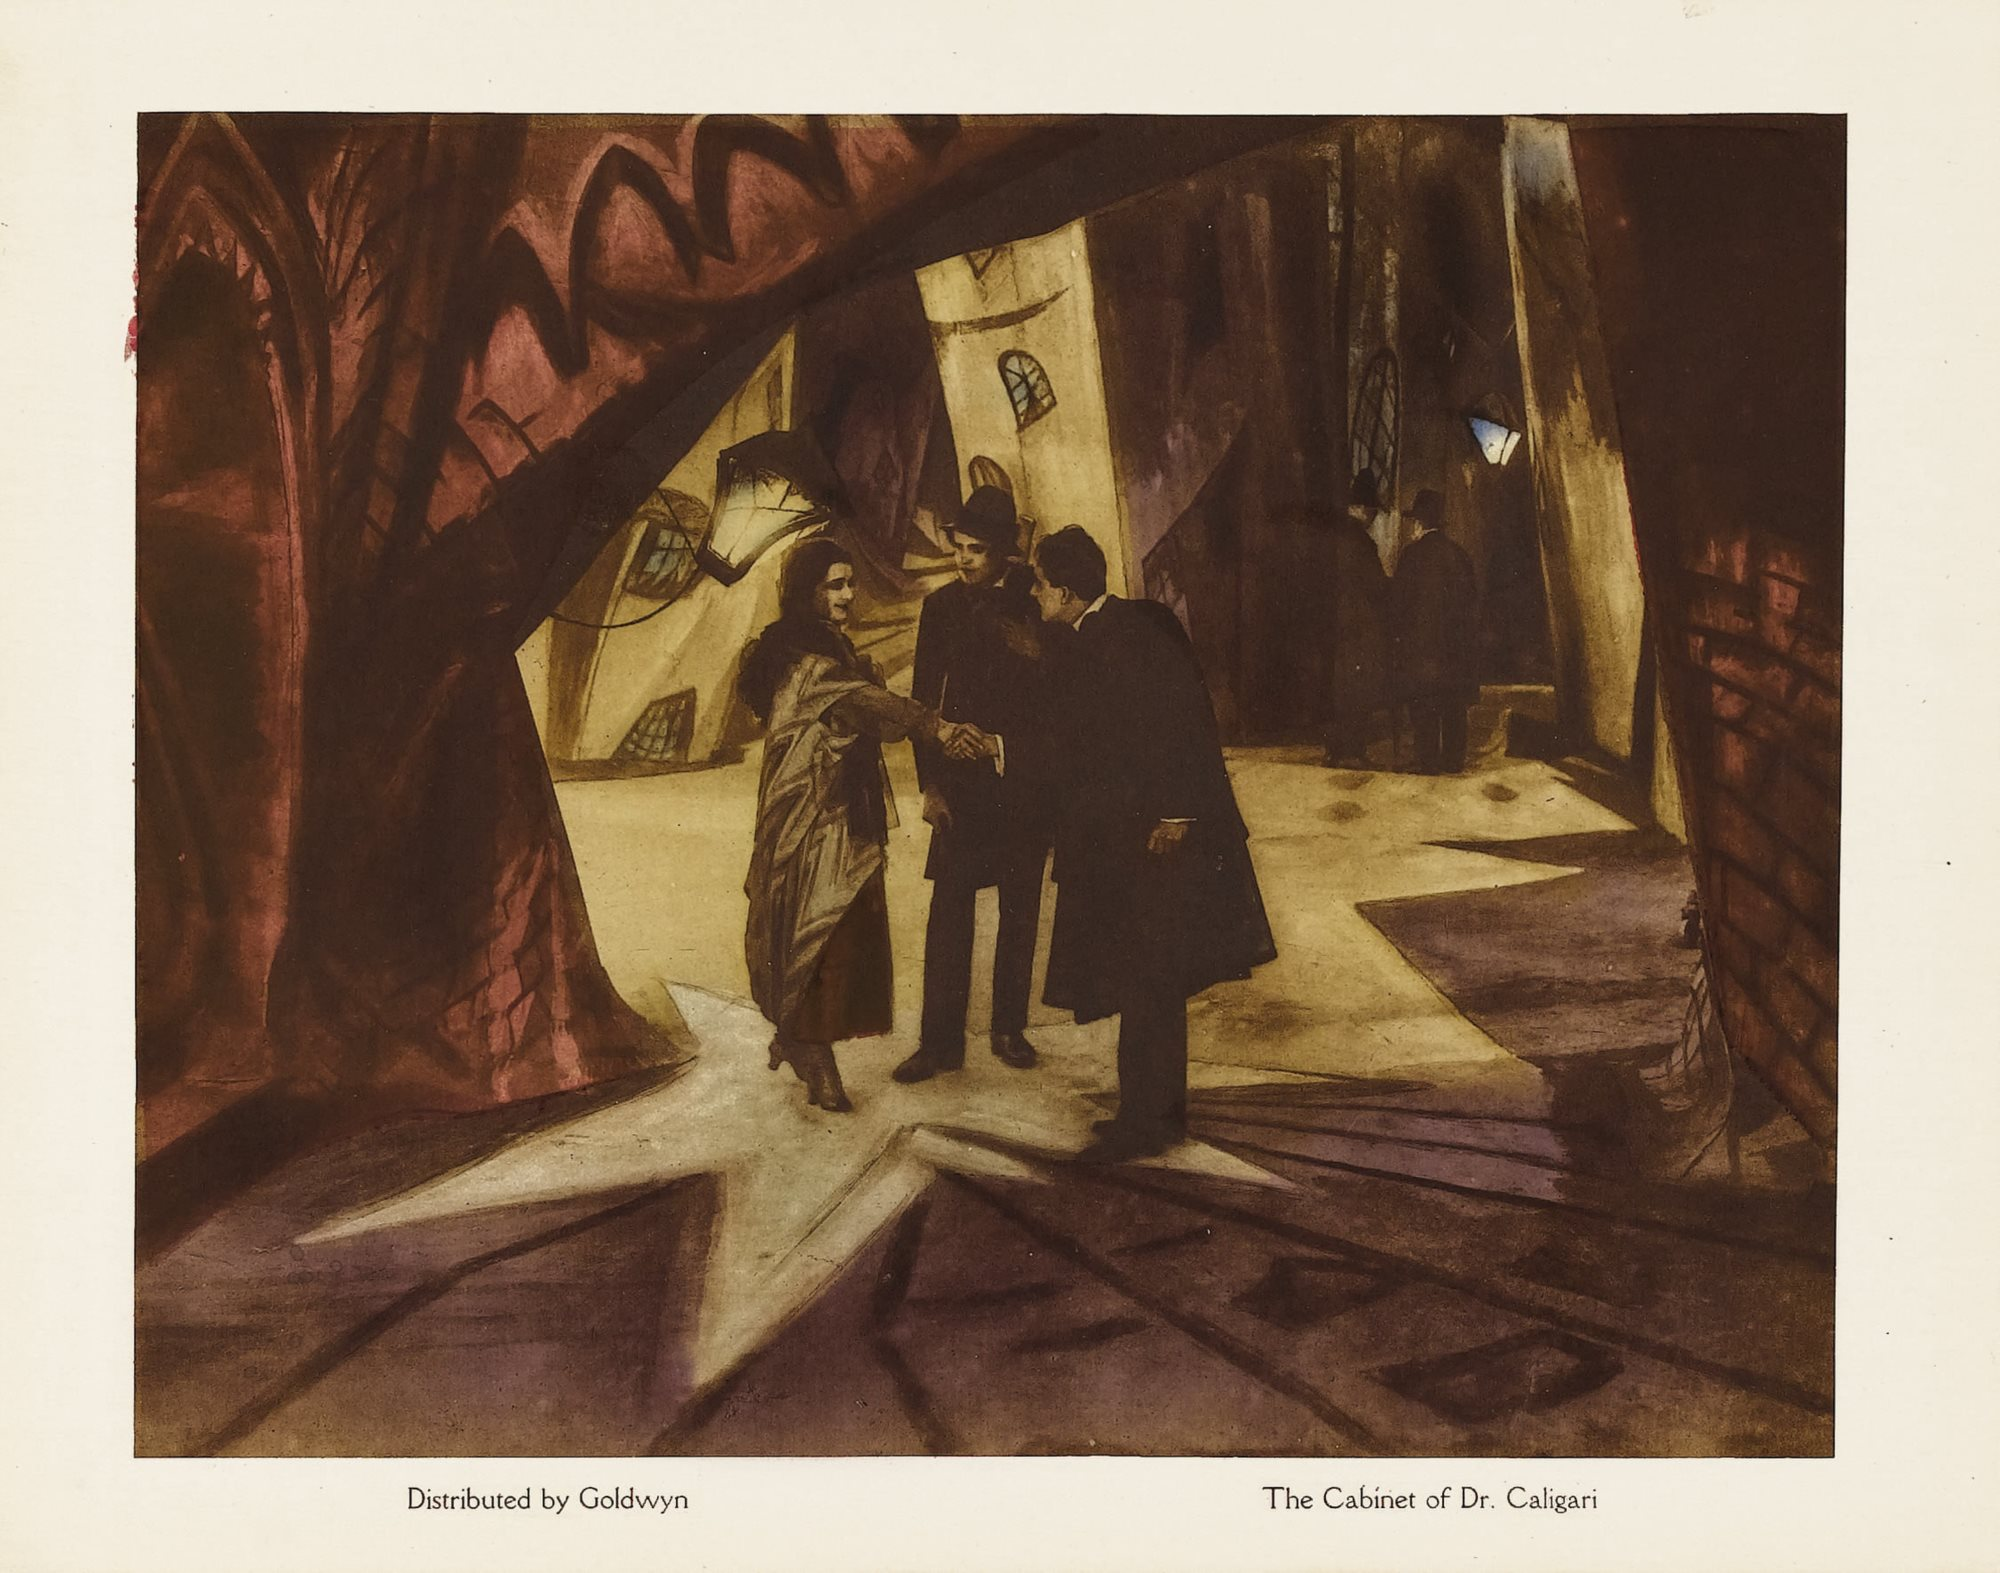 The Cabinet of Doctor Caligari Lobby Card, Goldwyn / Public domain